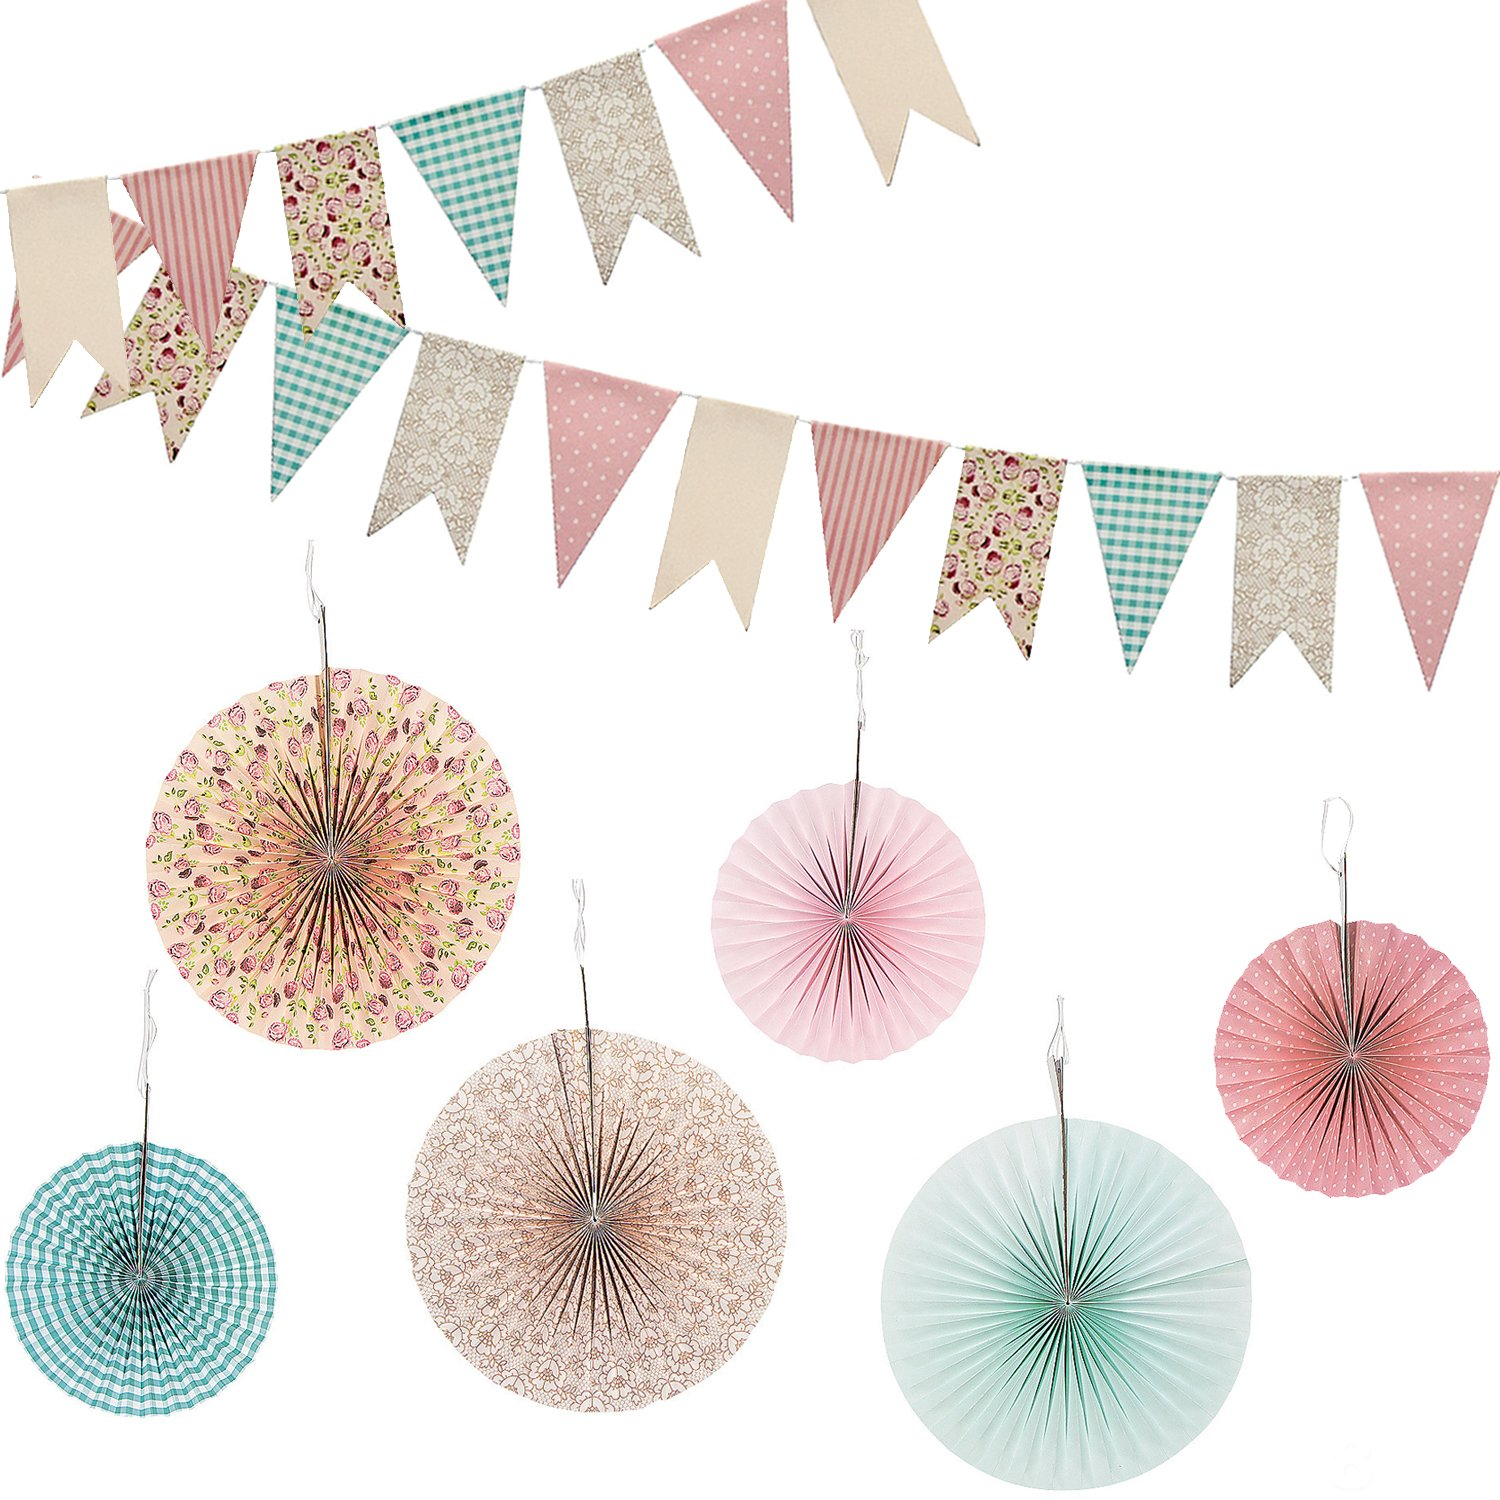 Vintage Floral Hanging Fans and Banner Decorations Decor 7 PC Pack for Wedding, Tea Party or Birthday Party in multicolor multi-colored designs by RBBZ Party